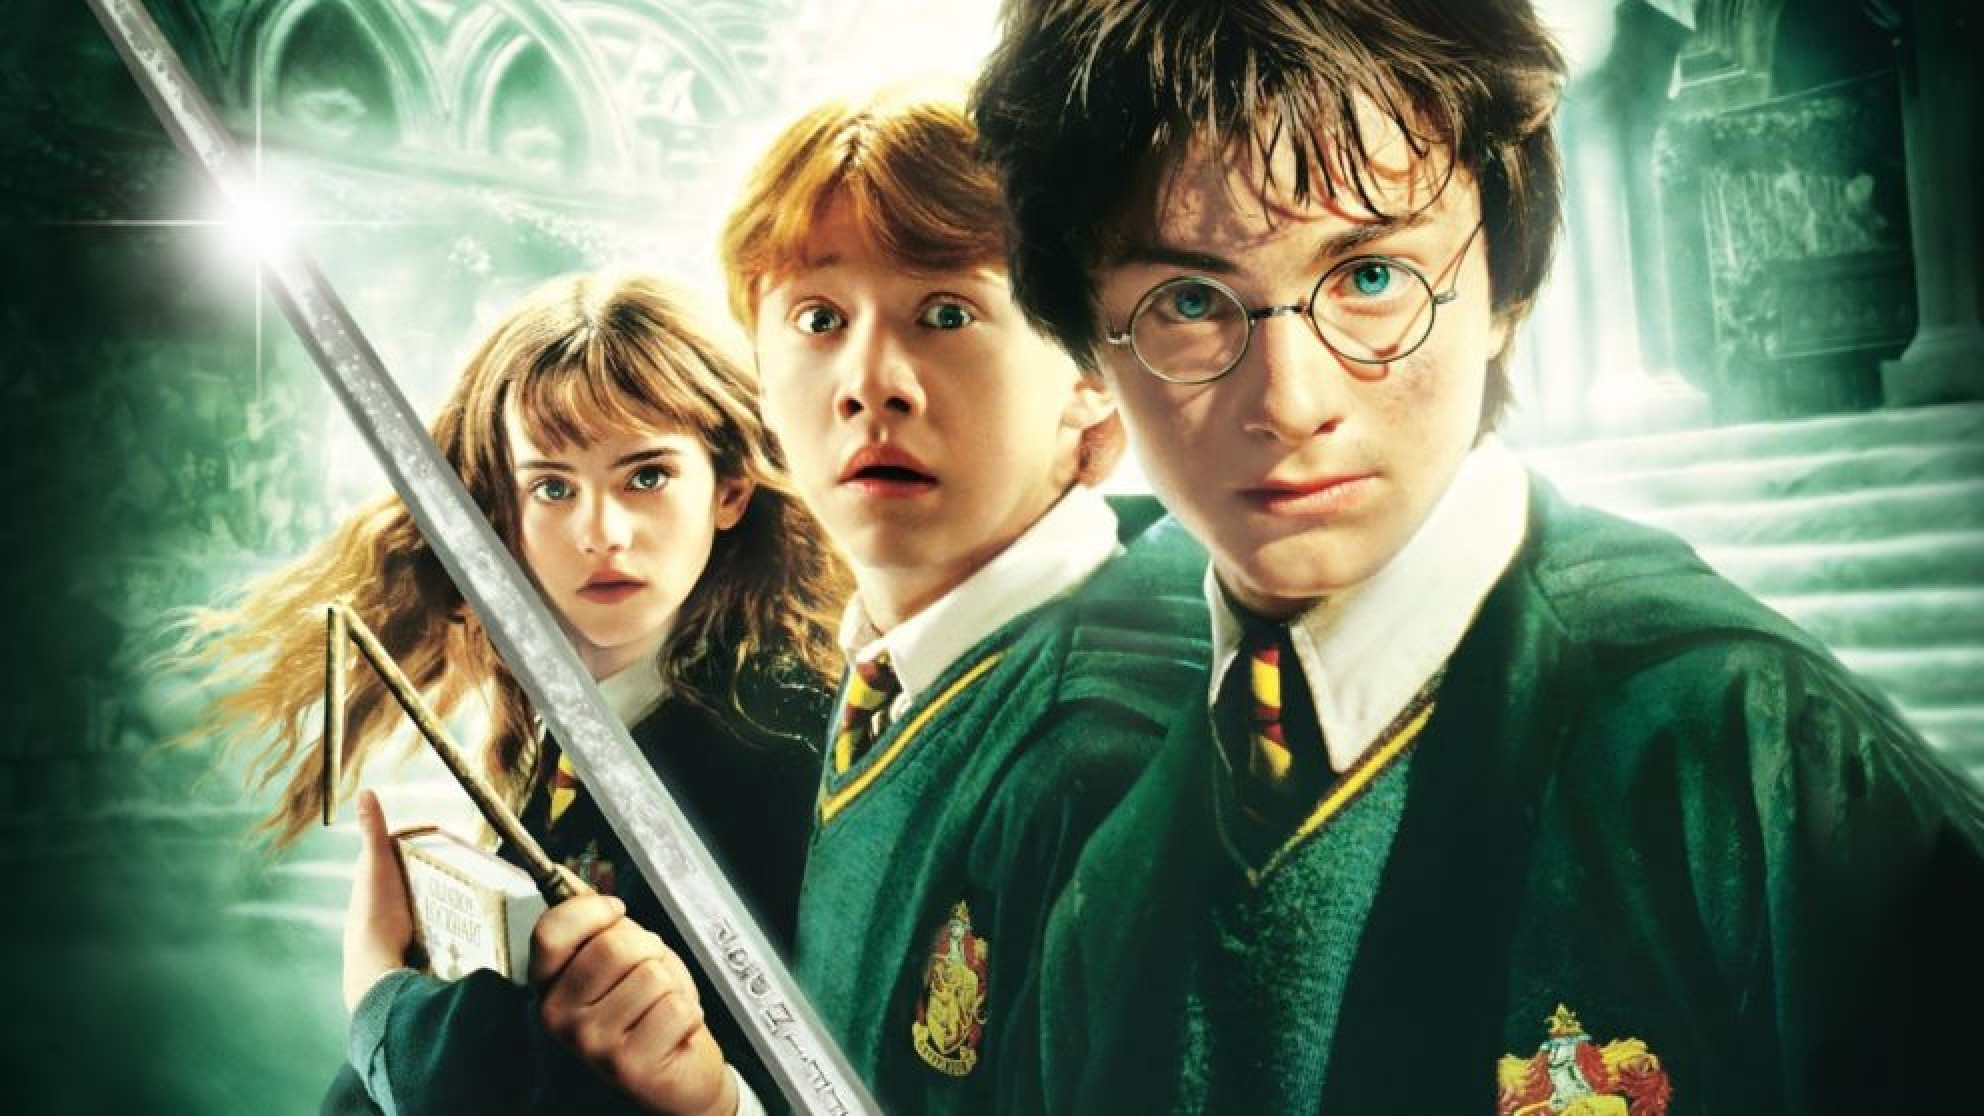 New Harry Potter RPG is coming, muggles